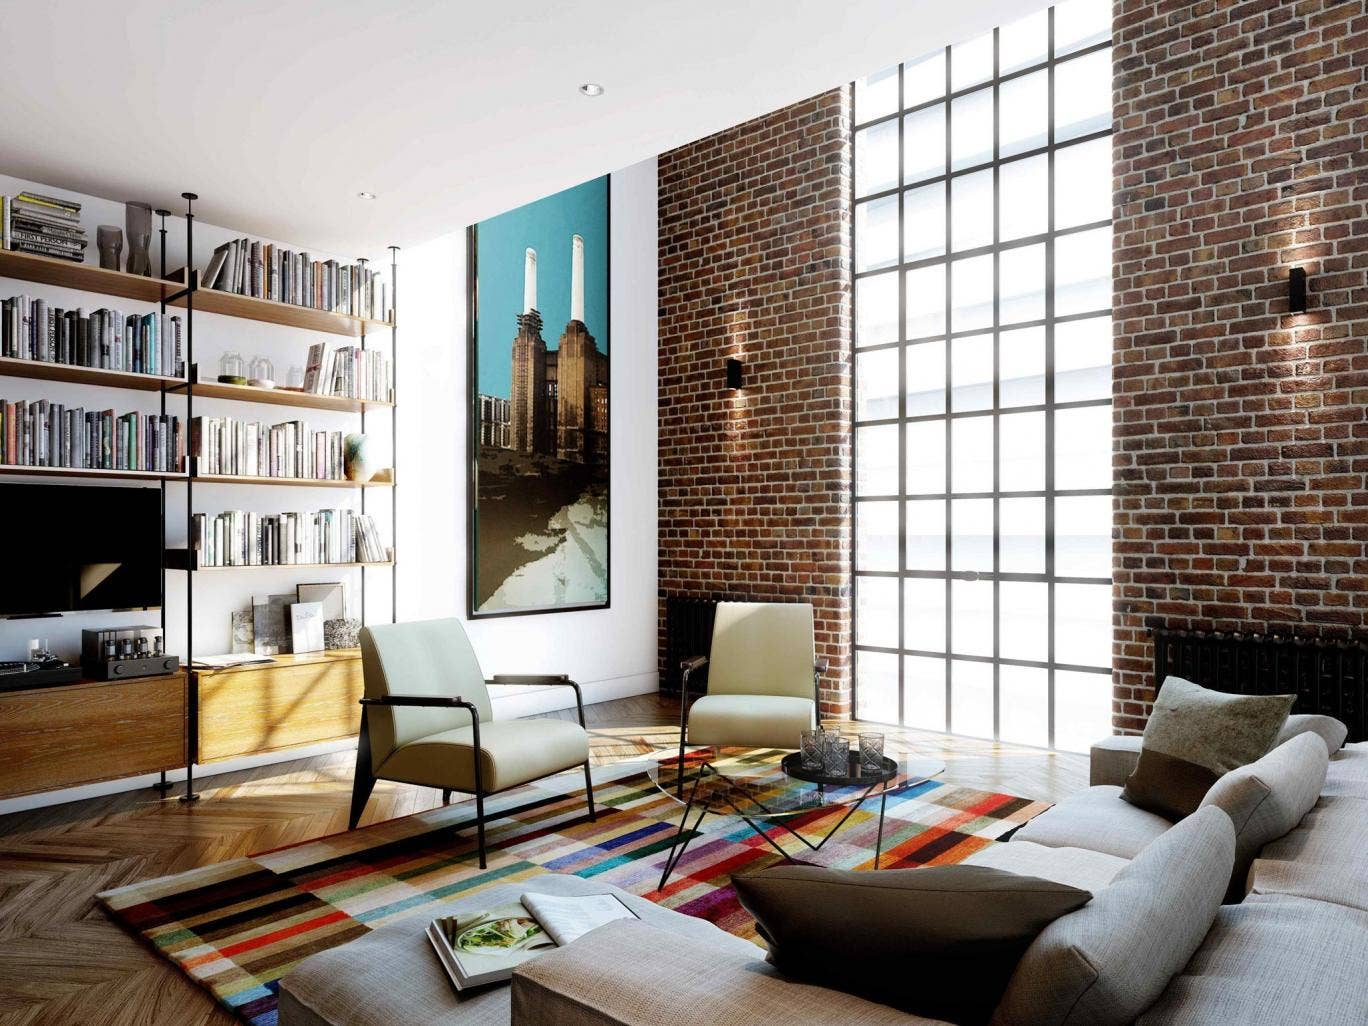 An artist's impression of an apartment living room at the Battersea Power Station